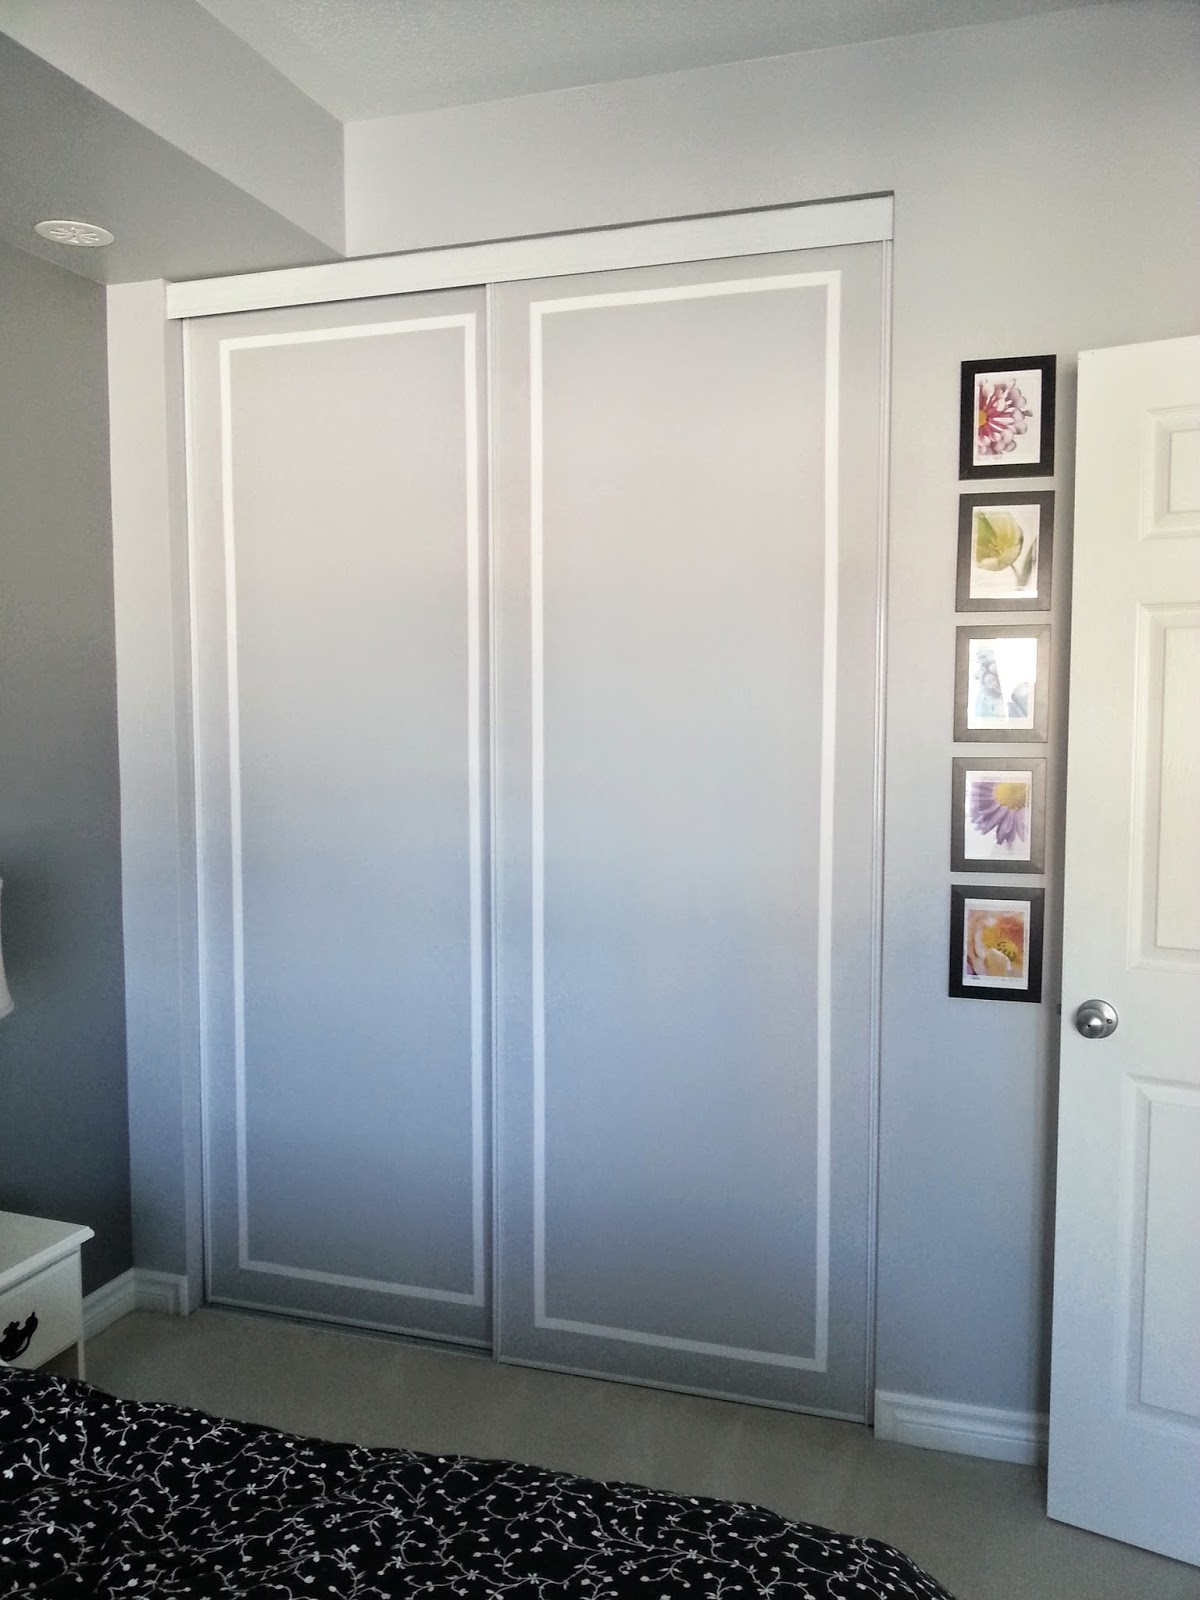 The Doors Now Blend Really Nicely With The Wall And Donu0027t Seem So Huge. The  Pattern Is Simple And Very Classy Looking. It Really Draws Your Eyes Up And  ...